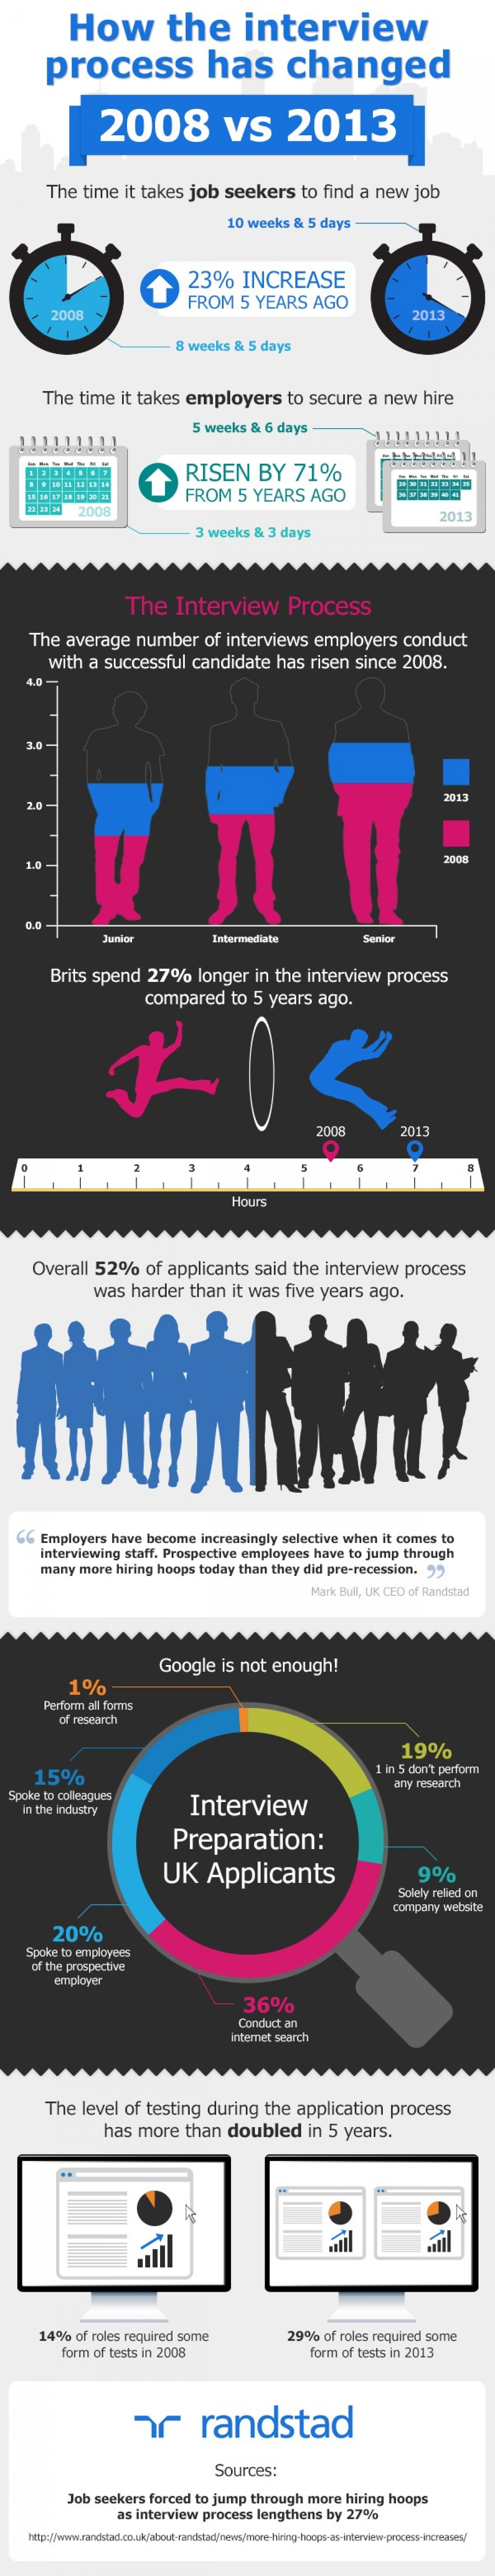 20. How the interview process has changed